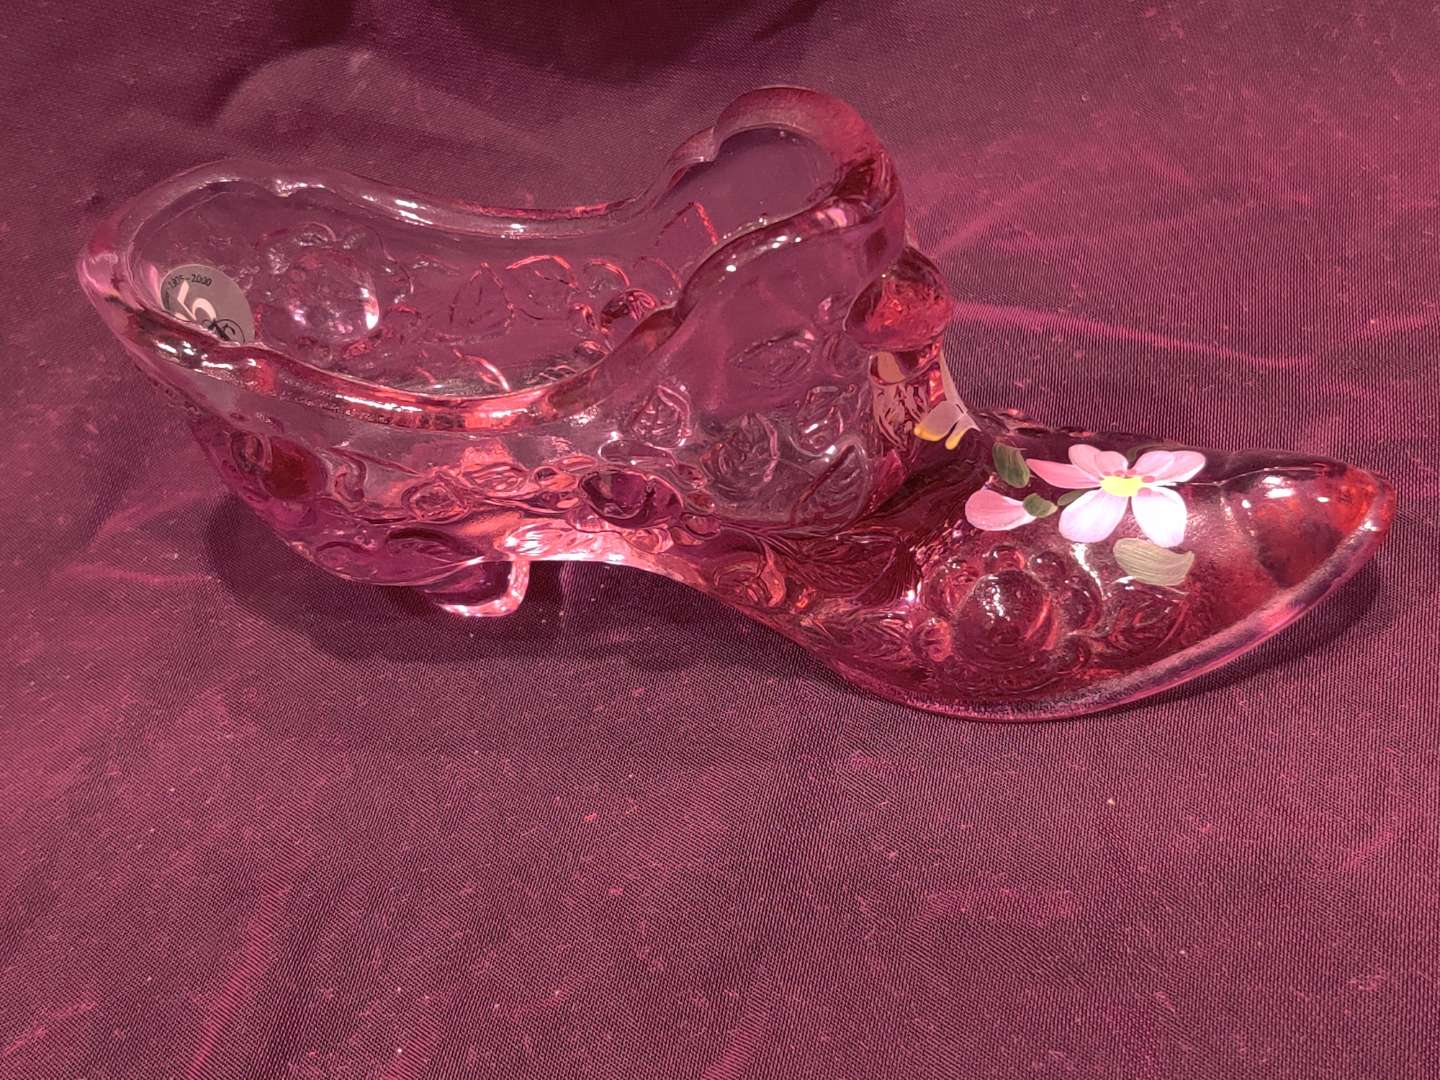 # 29 Fenton hand-painted pink shoe 6 in Long excellent condition